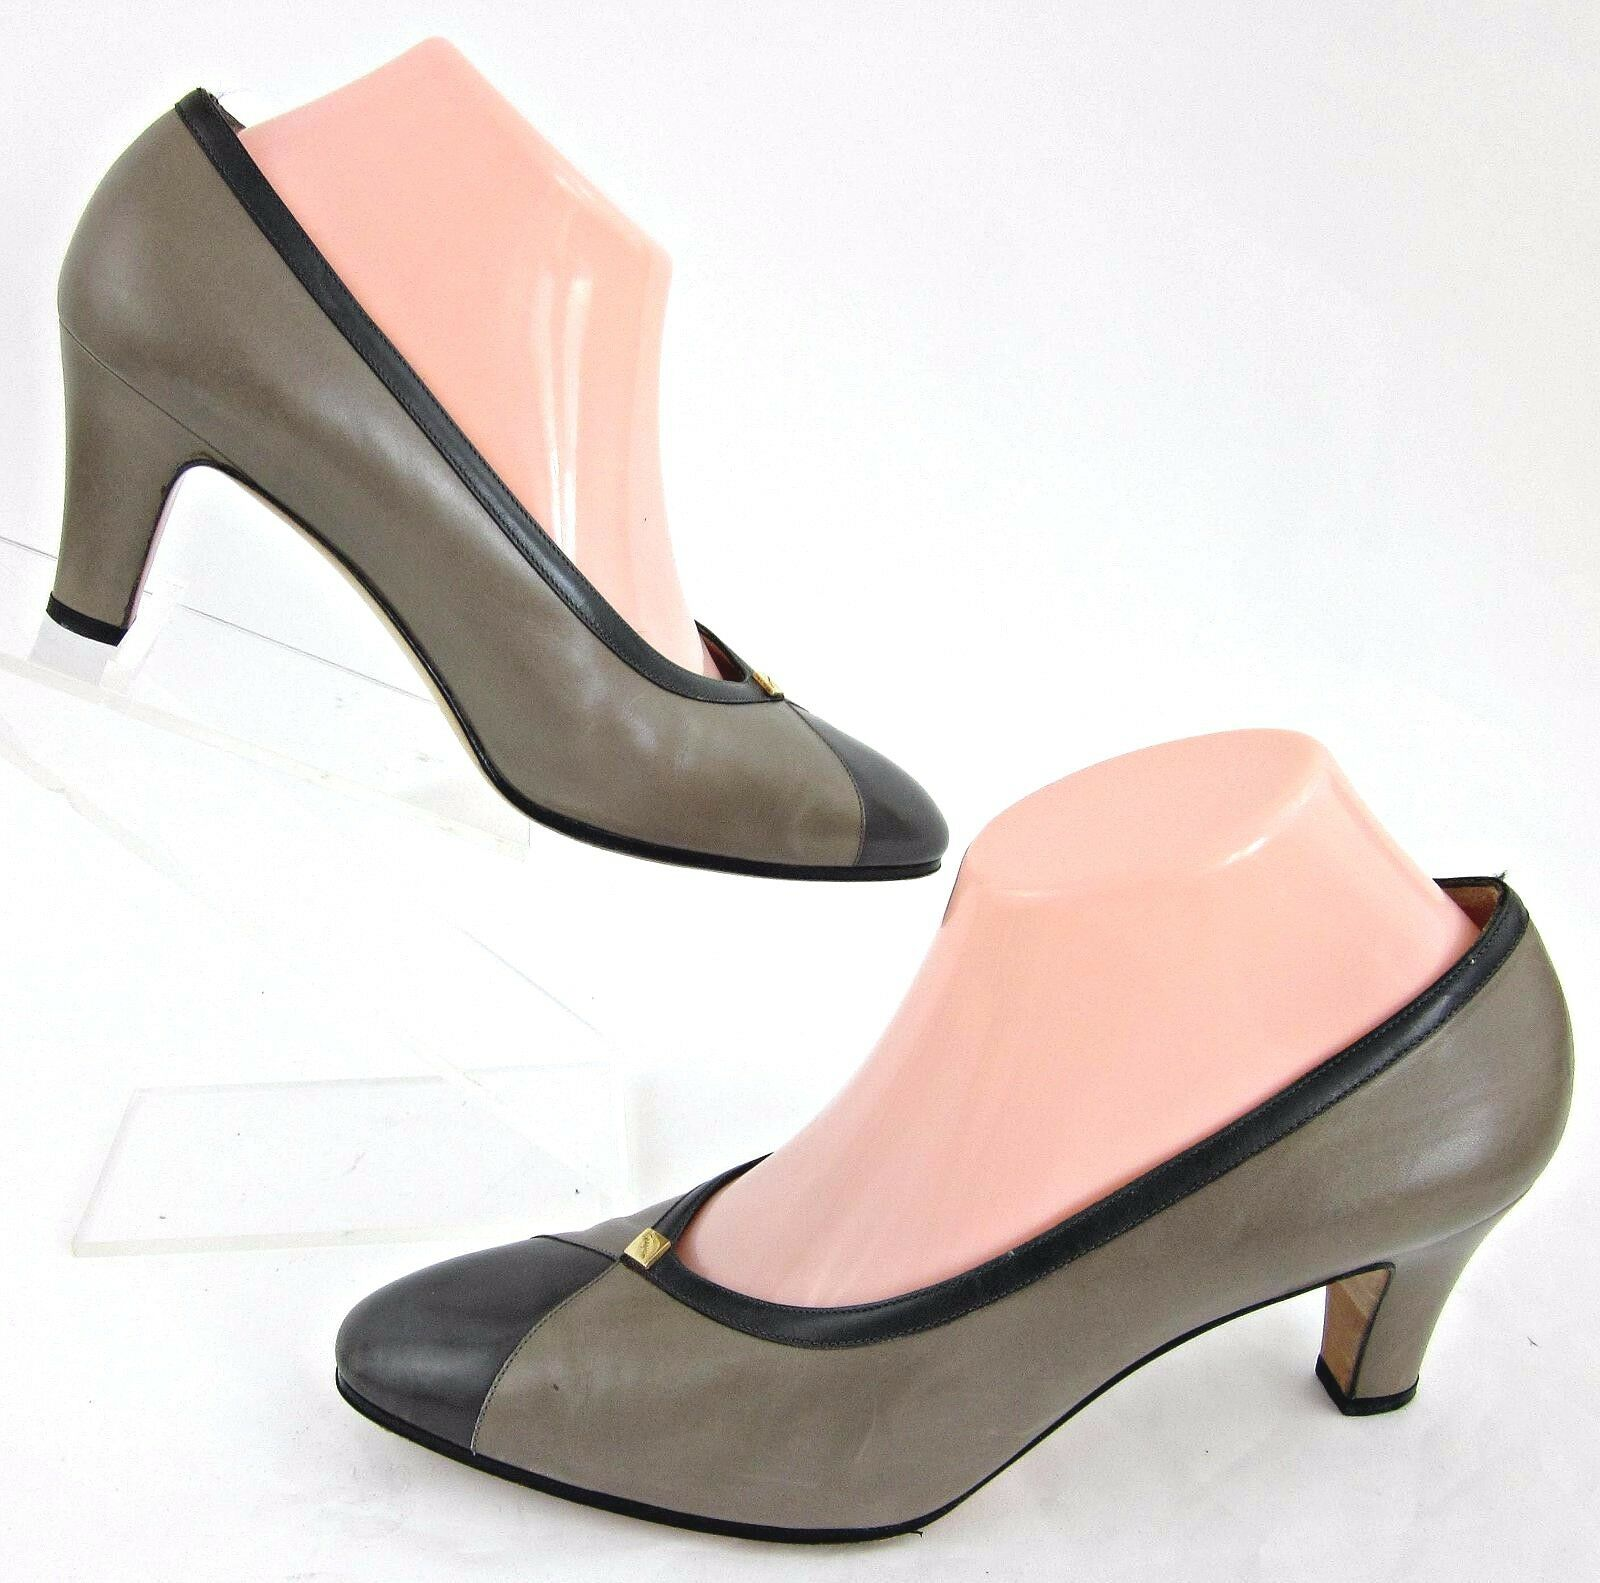 Salvatore Ferragamo For Saks Fifth Avenue Pumps Taupe & Dark Grau 8.5B